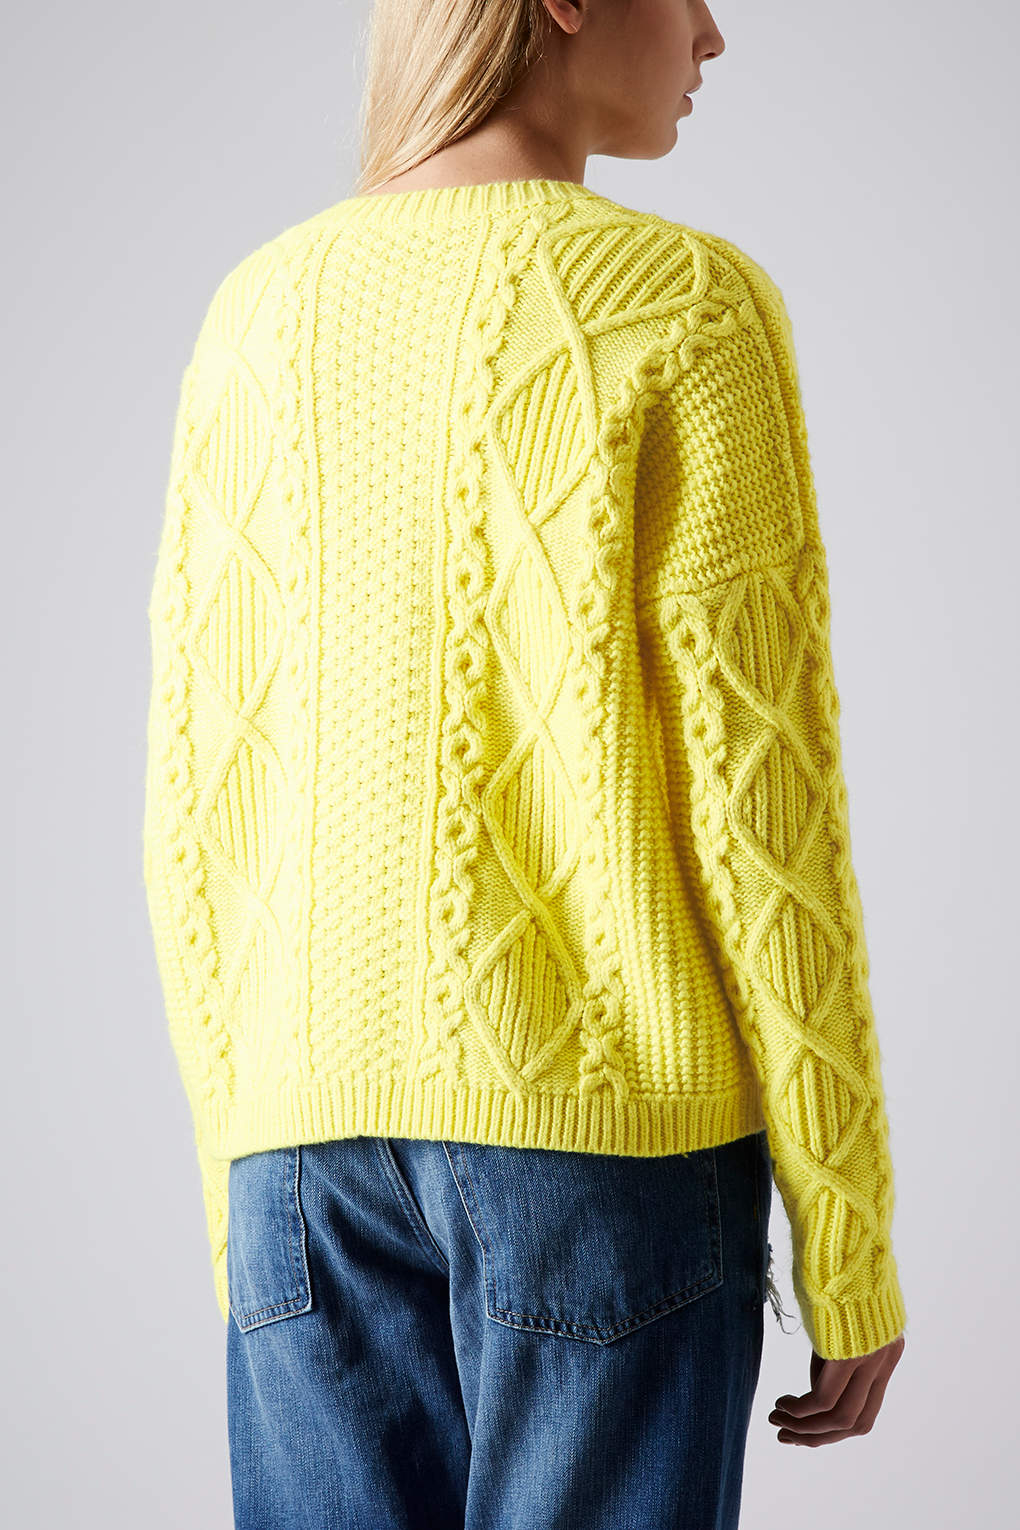 Lyst Topshop Knitted Angora Cable Jumper In Yellow